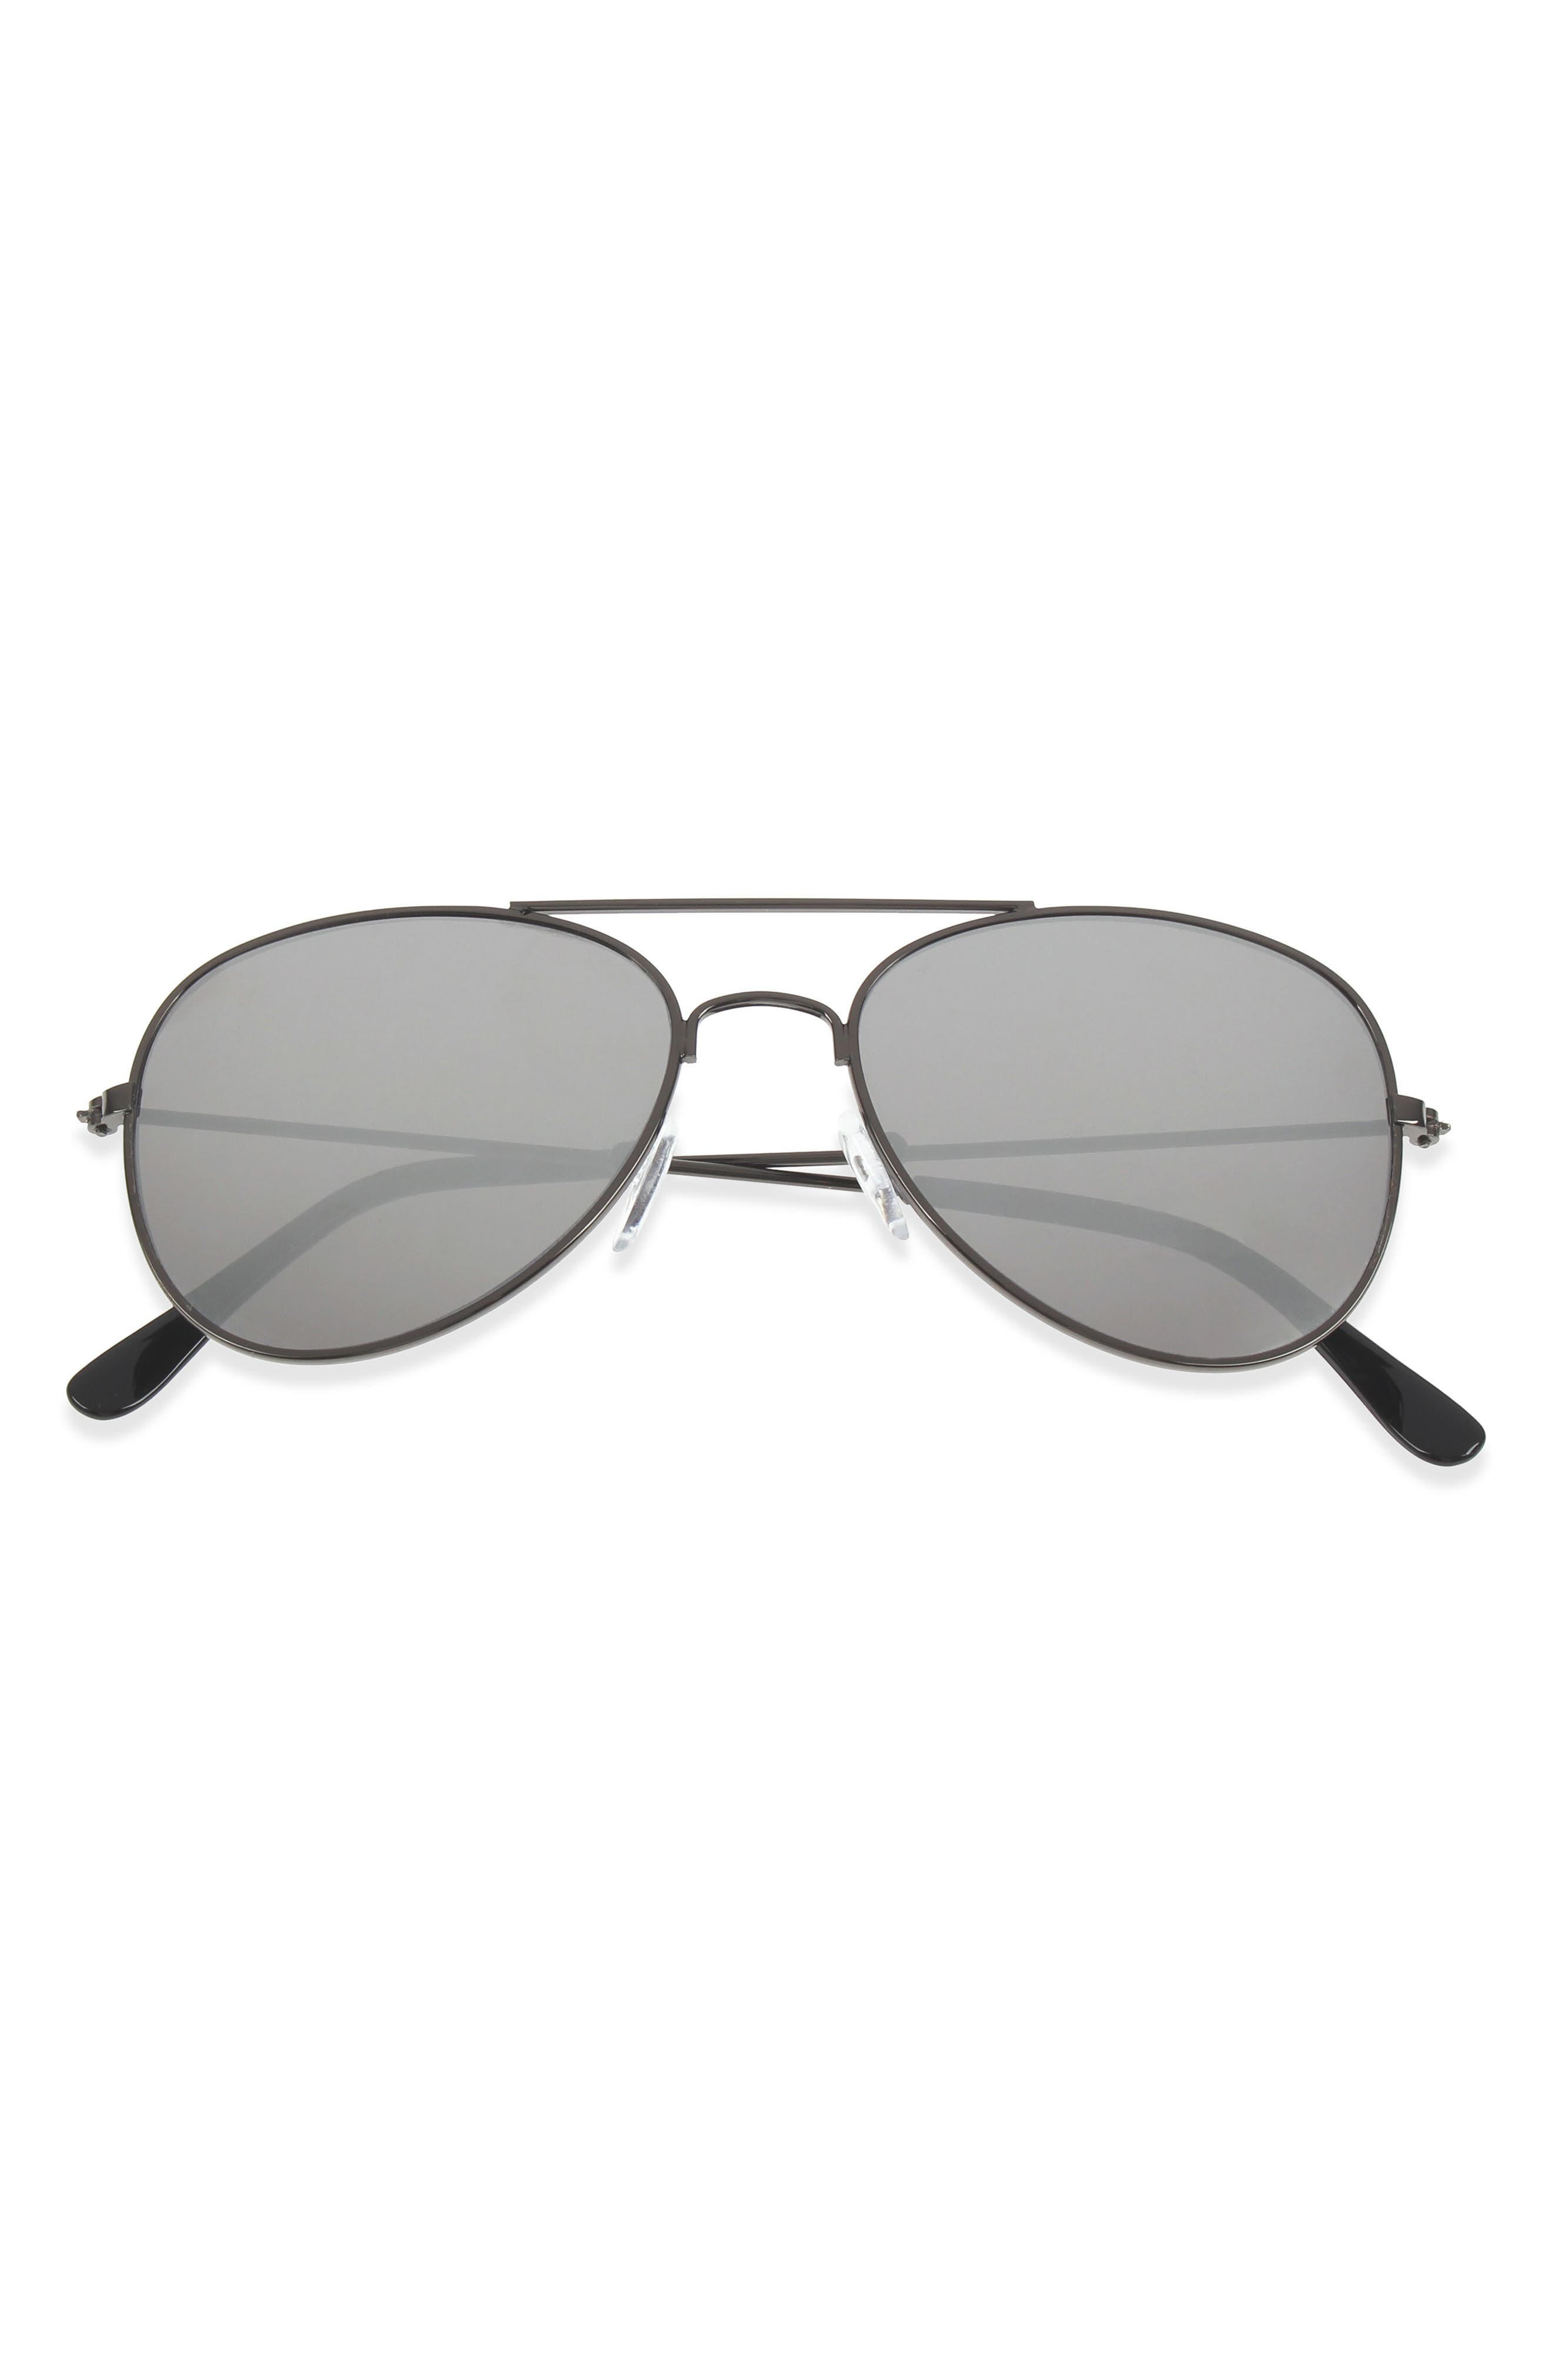 50mm Mirrored Aviator Sunglasses,                             Main thumbnail 1, color,                             002